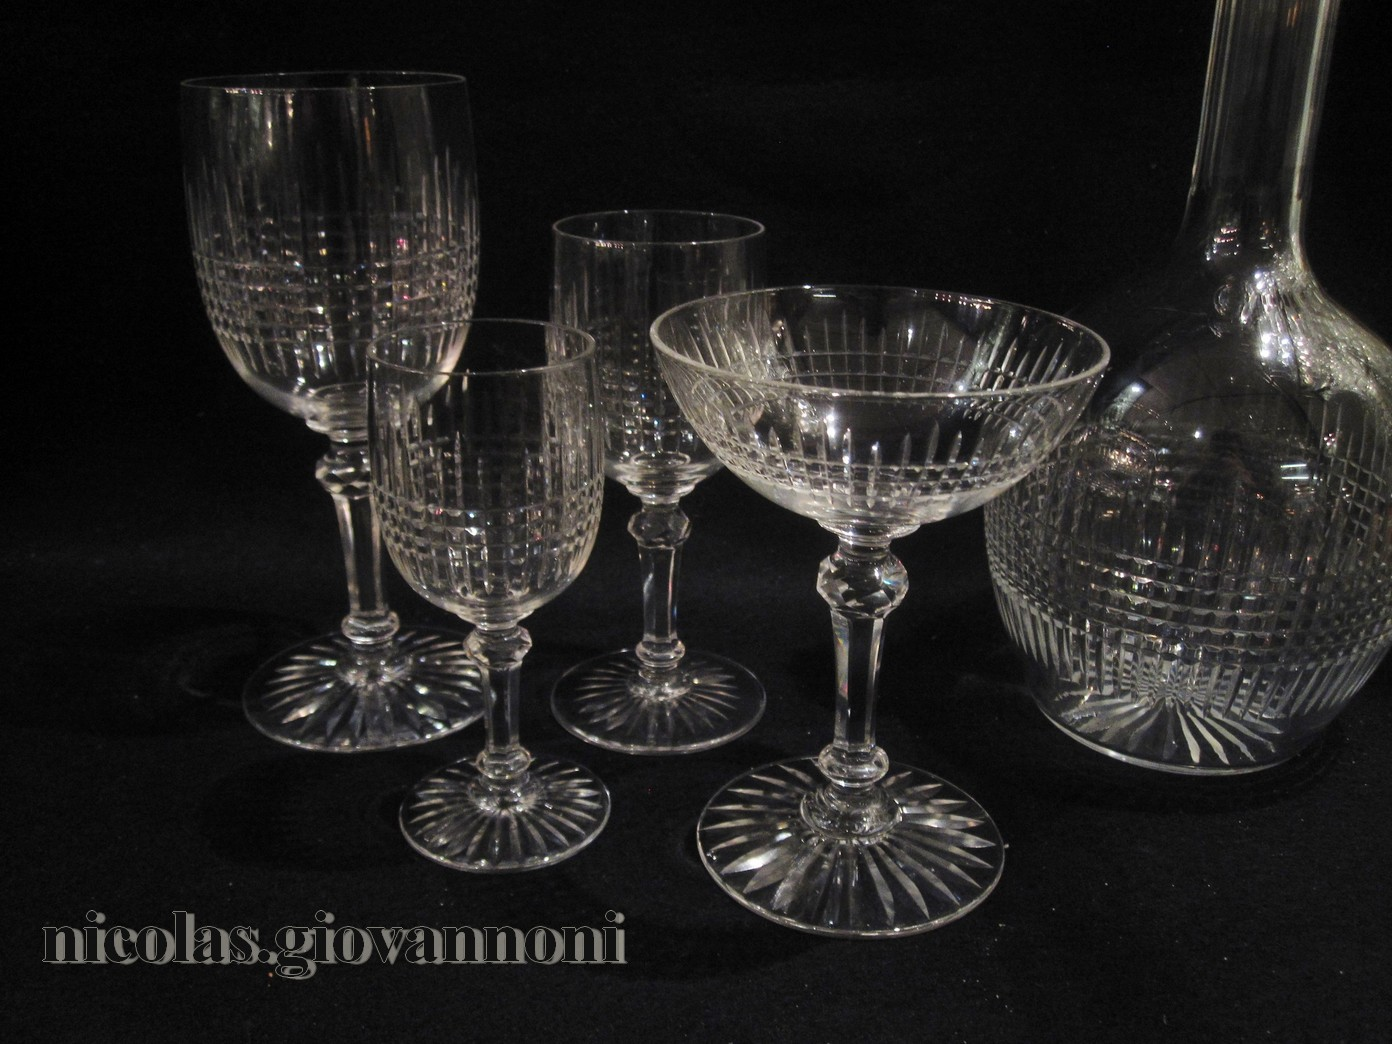 service 30 verres 3 carafes dombasle baccarat cristal catalogue cristal de france. Black Bedroom Furniture Sets. Home Design Ideas